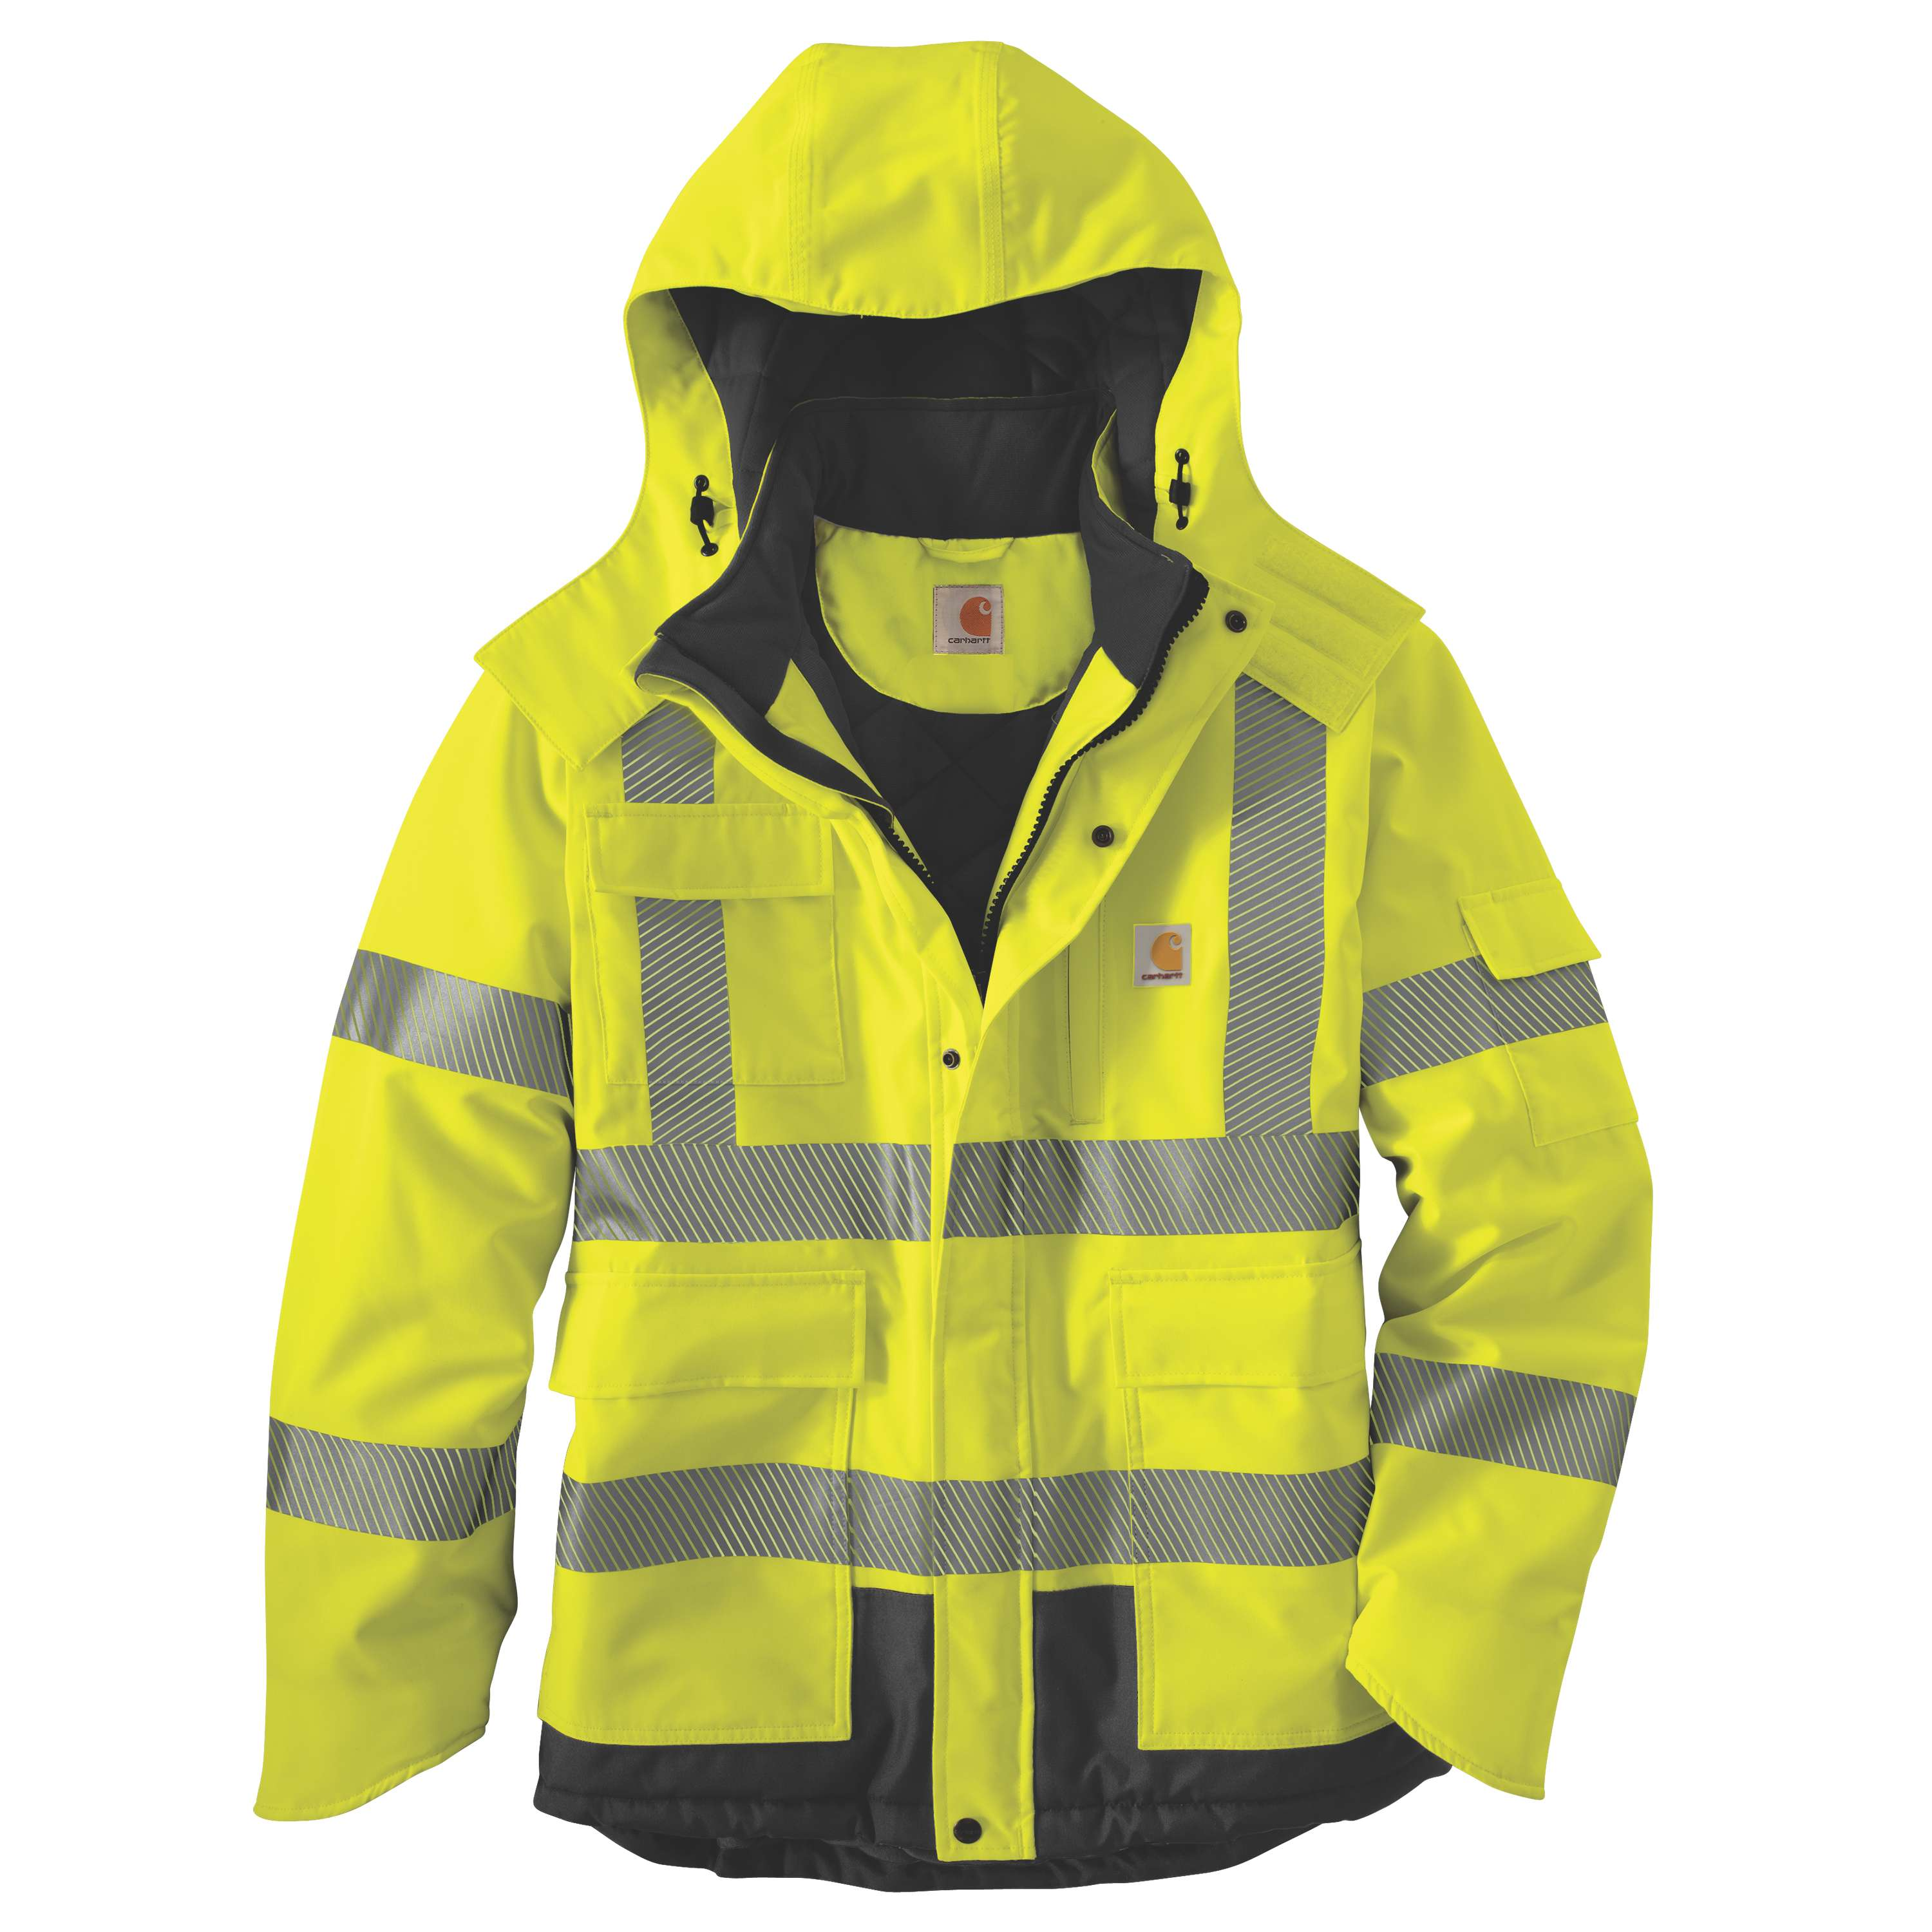 Carhartt High-Visibility Class 3 Sherwood Jacket